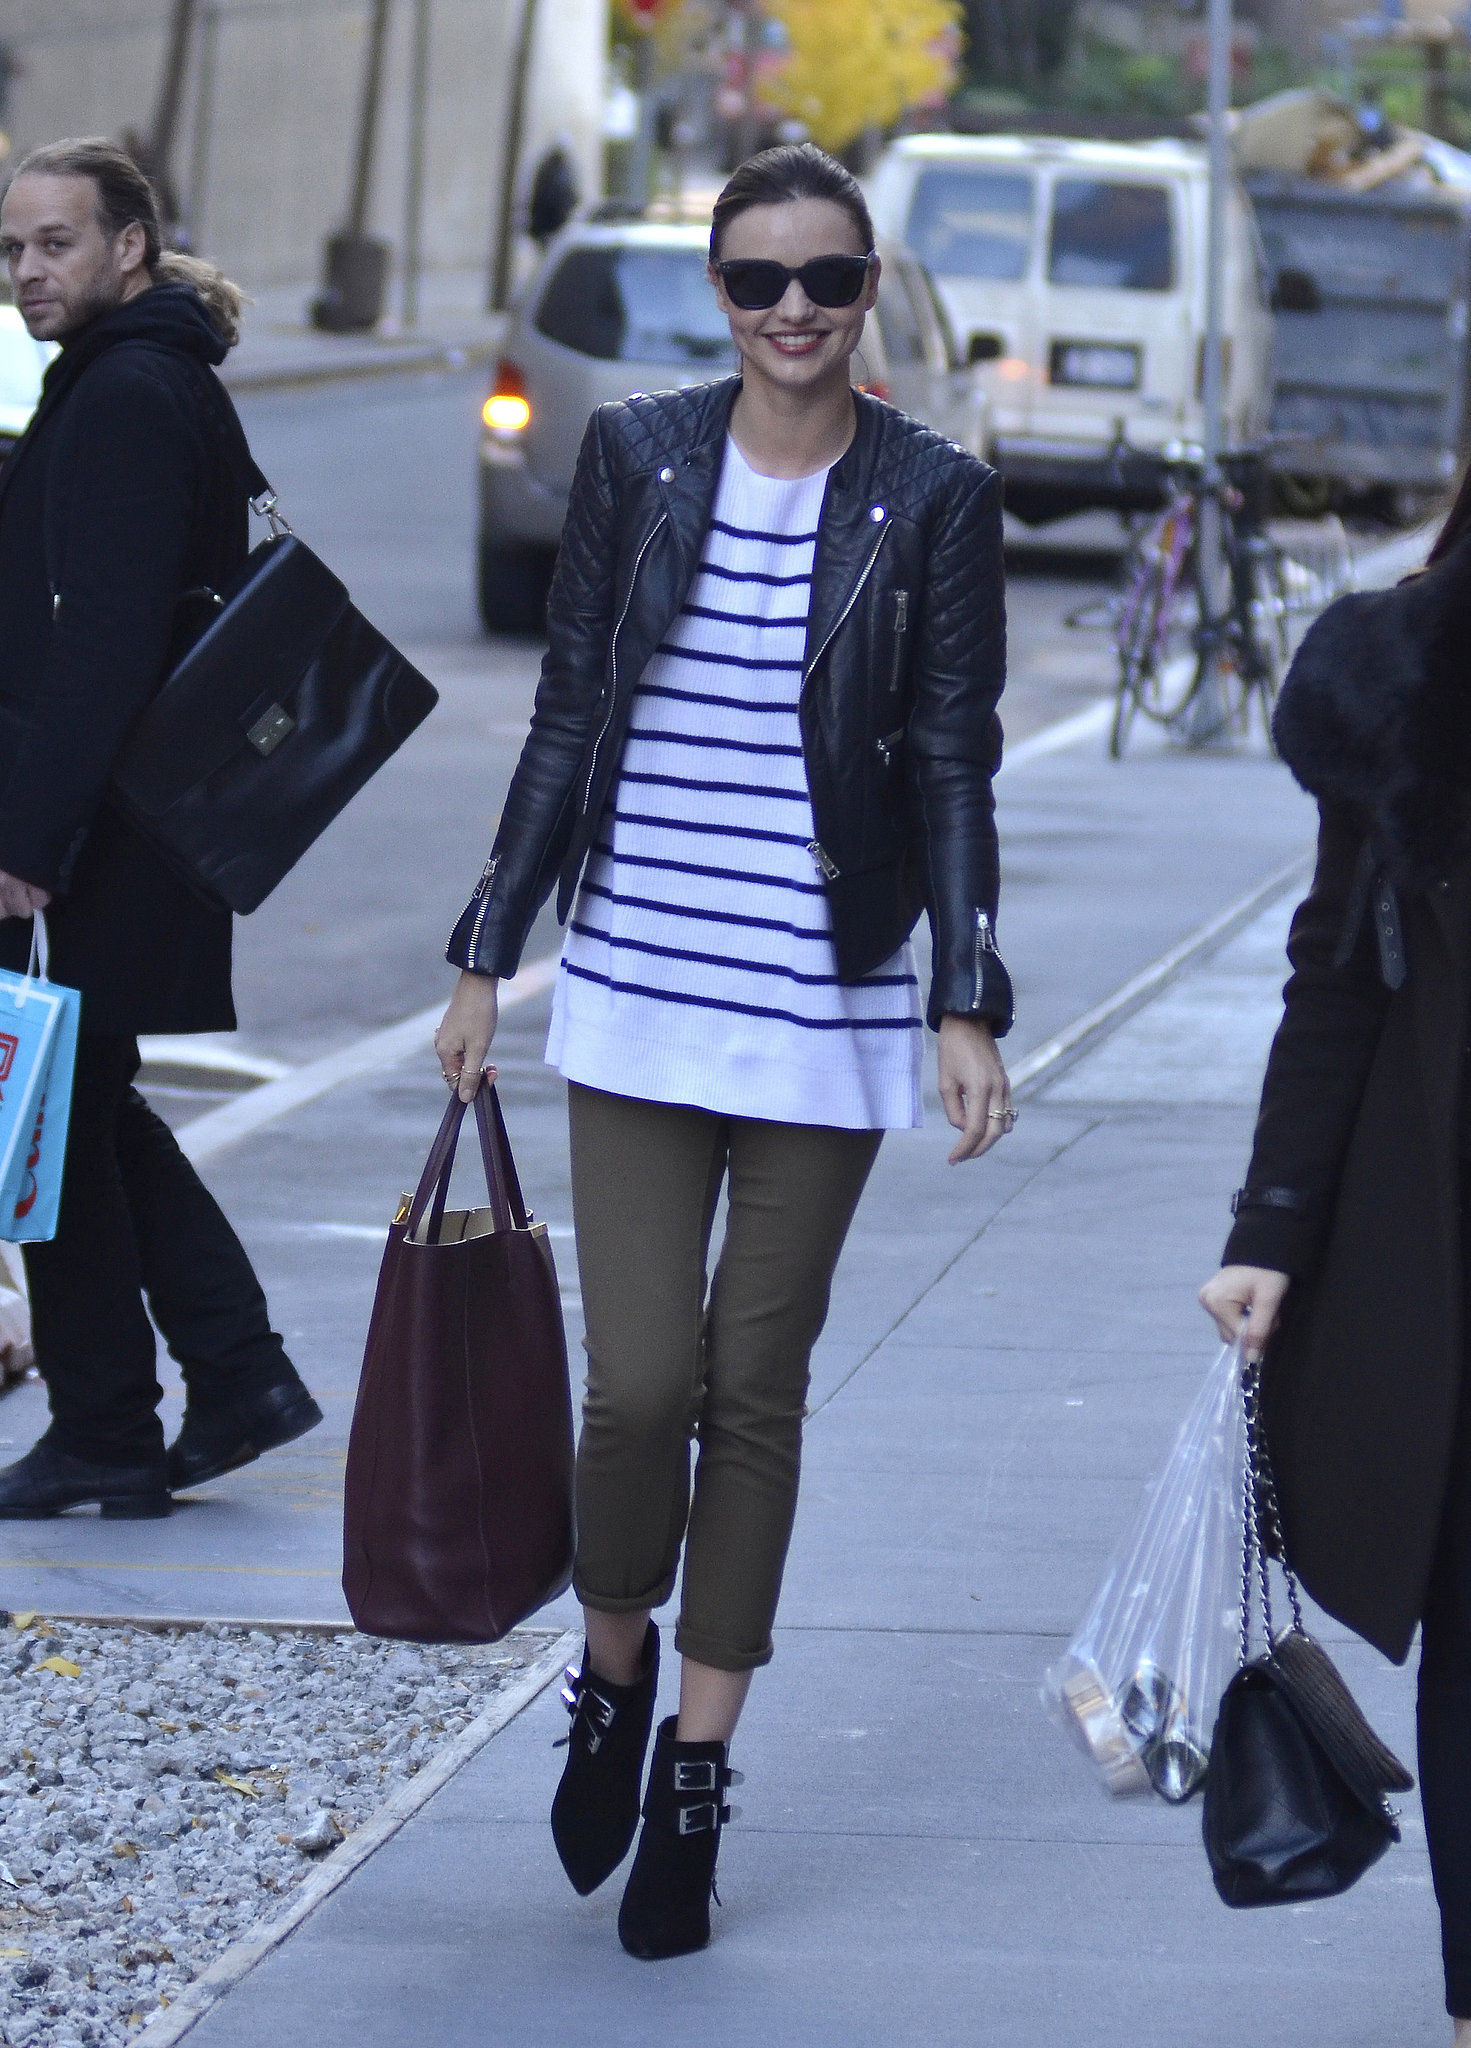 effortless-mix-edgy-leather-preppy-stripes-provides